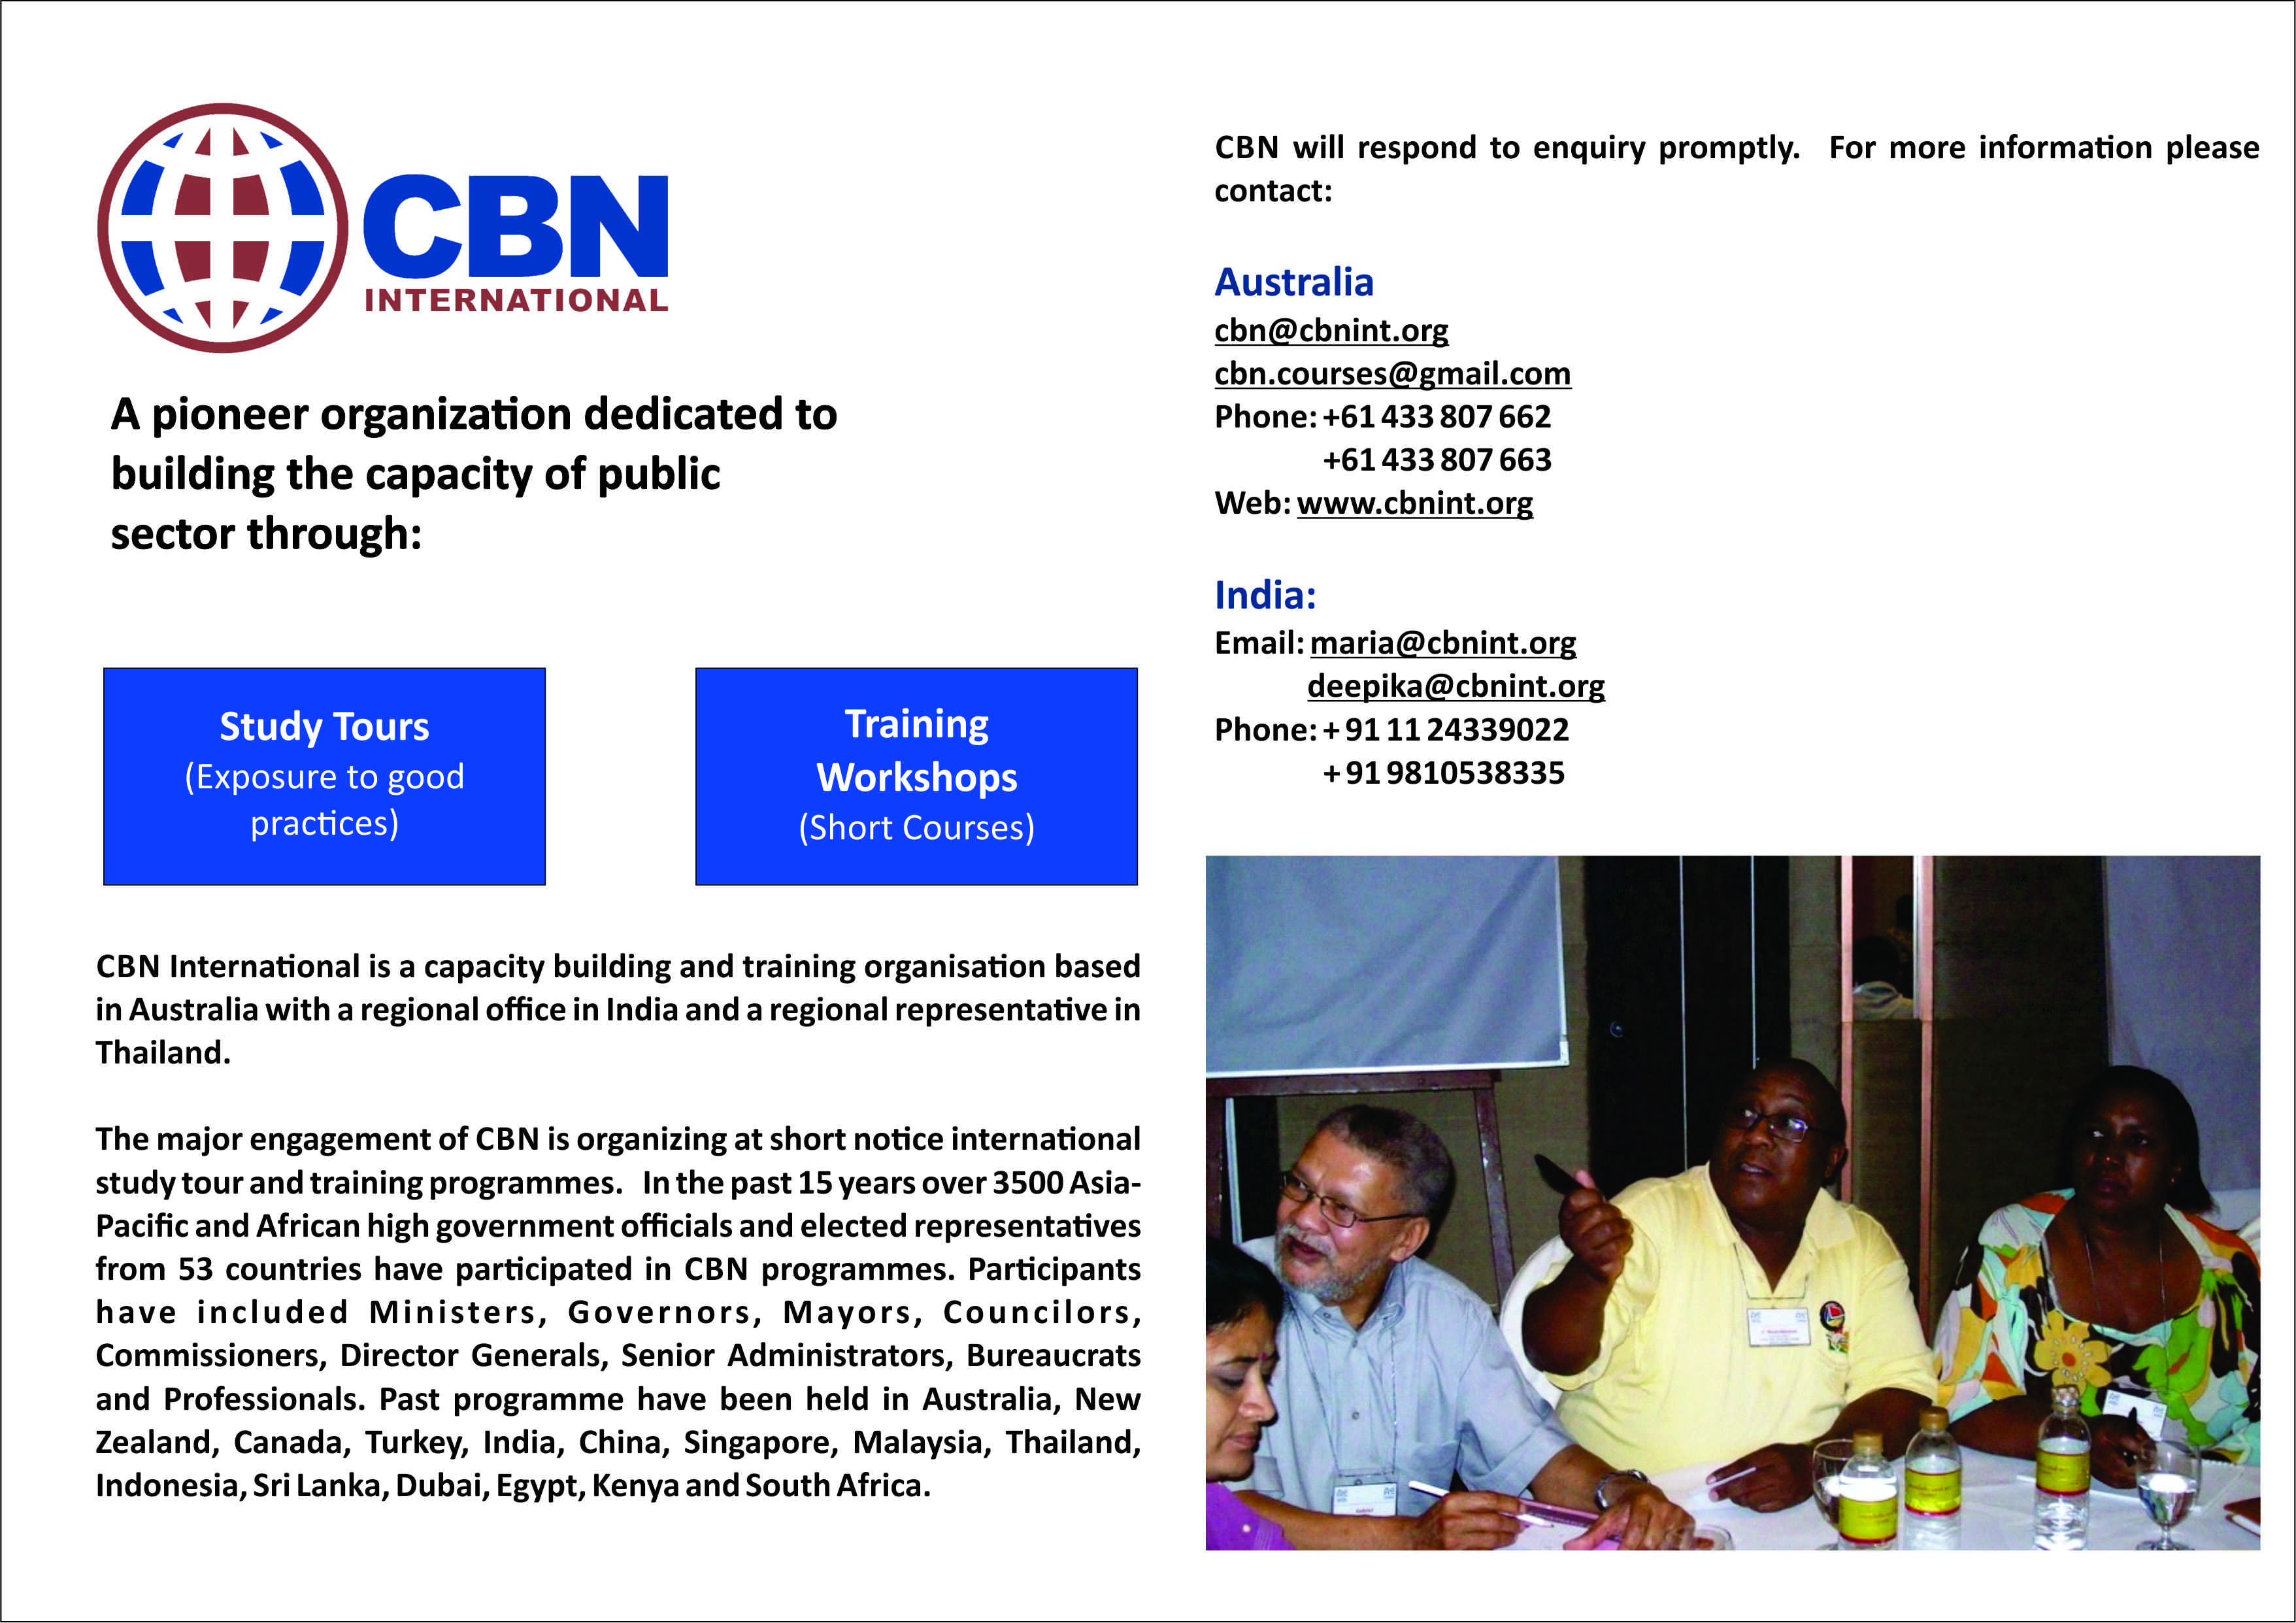 International Study Tour and Training programme organized by CBN International on Local Government in Bangkok, Thailand